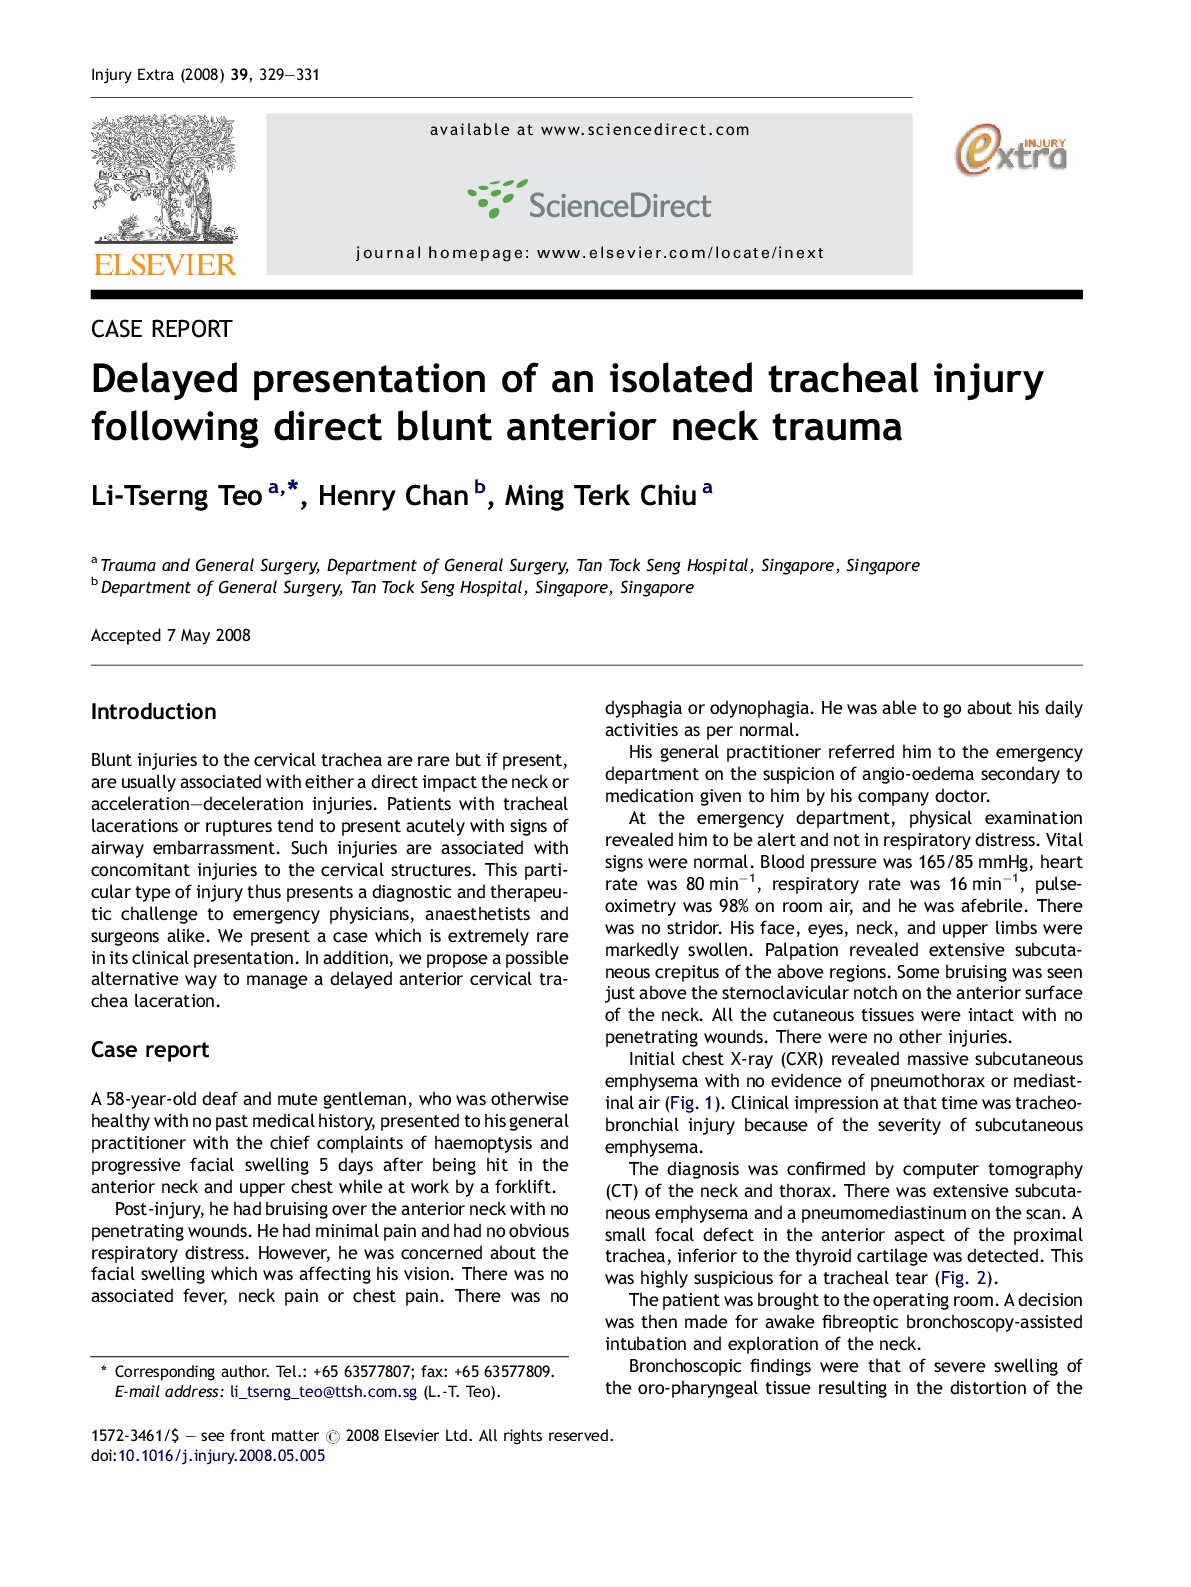 Delayed Presentation of An Isolated Tracheal Injury Following Direct Blunt Anterior Neck Trauma